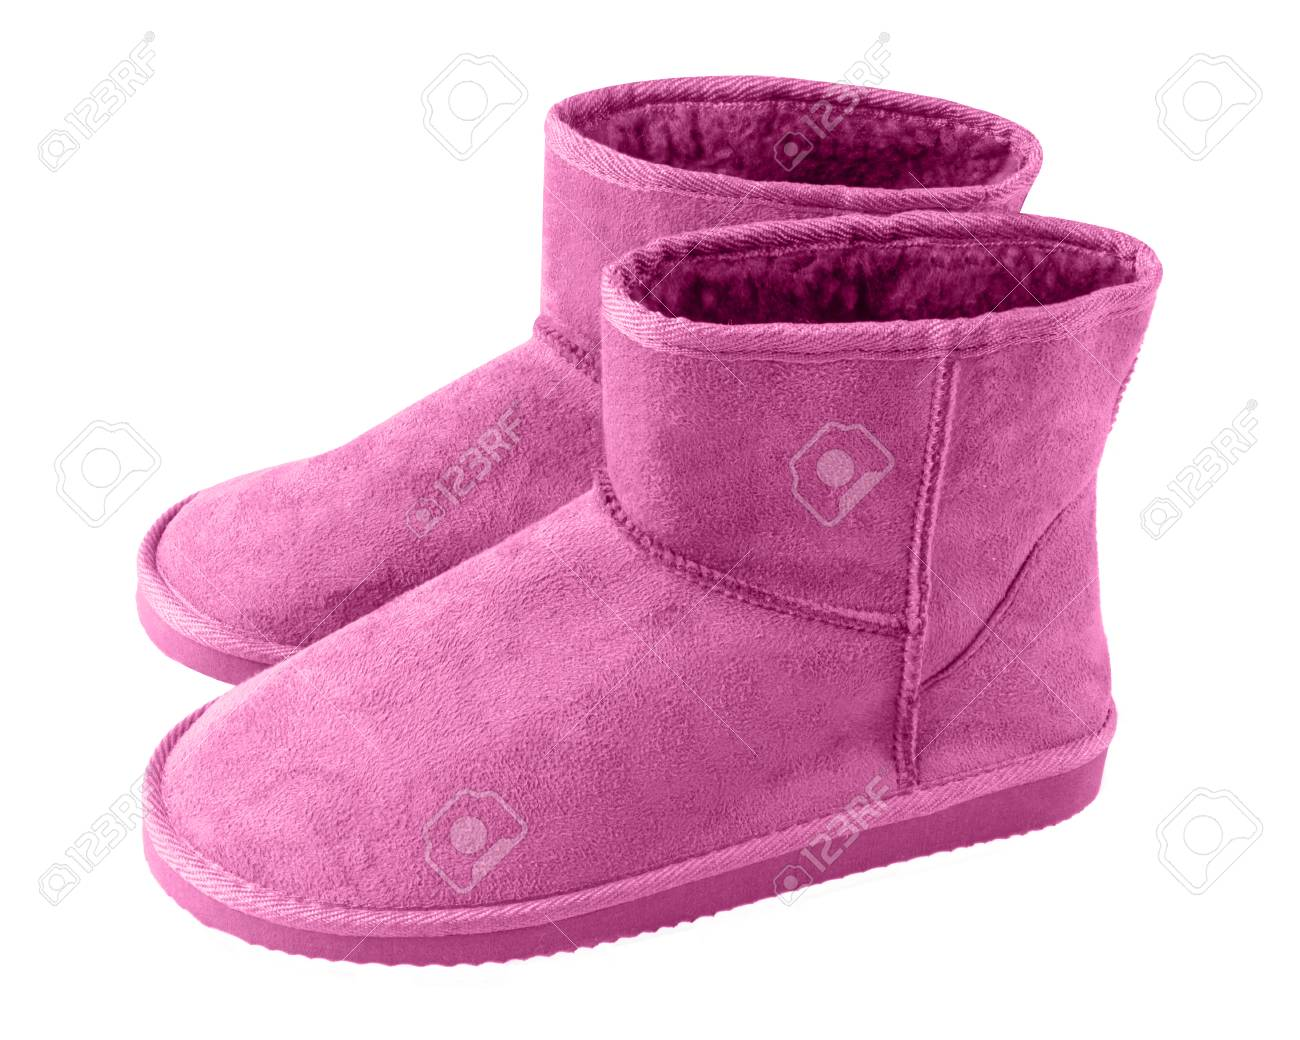 077efb0a8c7 Pink pair of short winter ugg boots isolated white